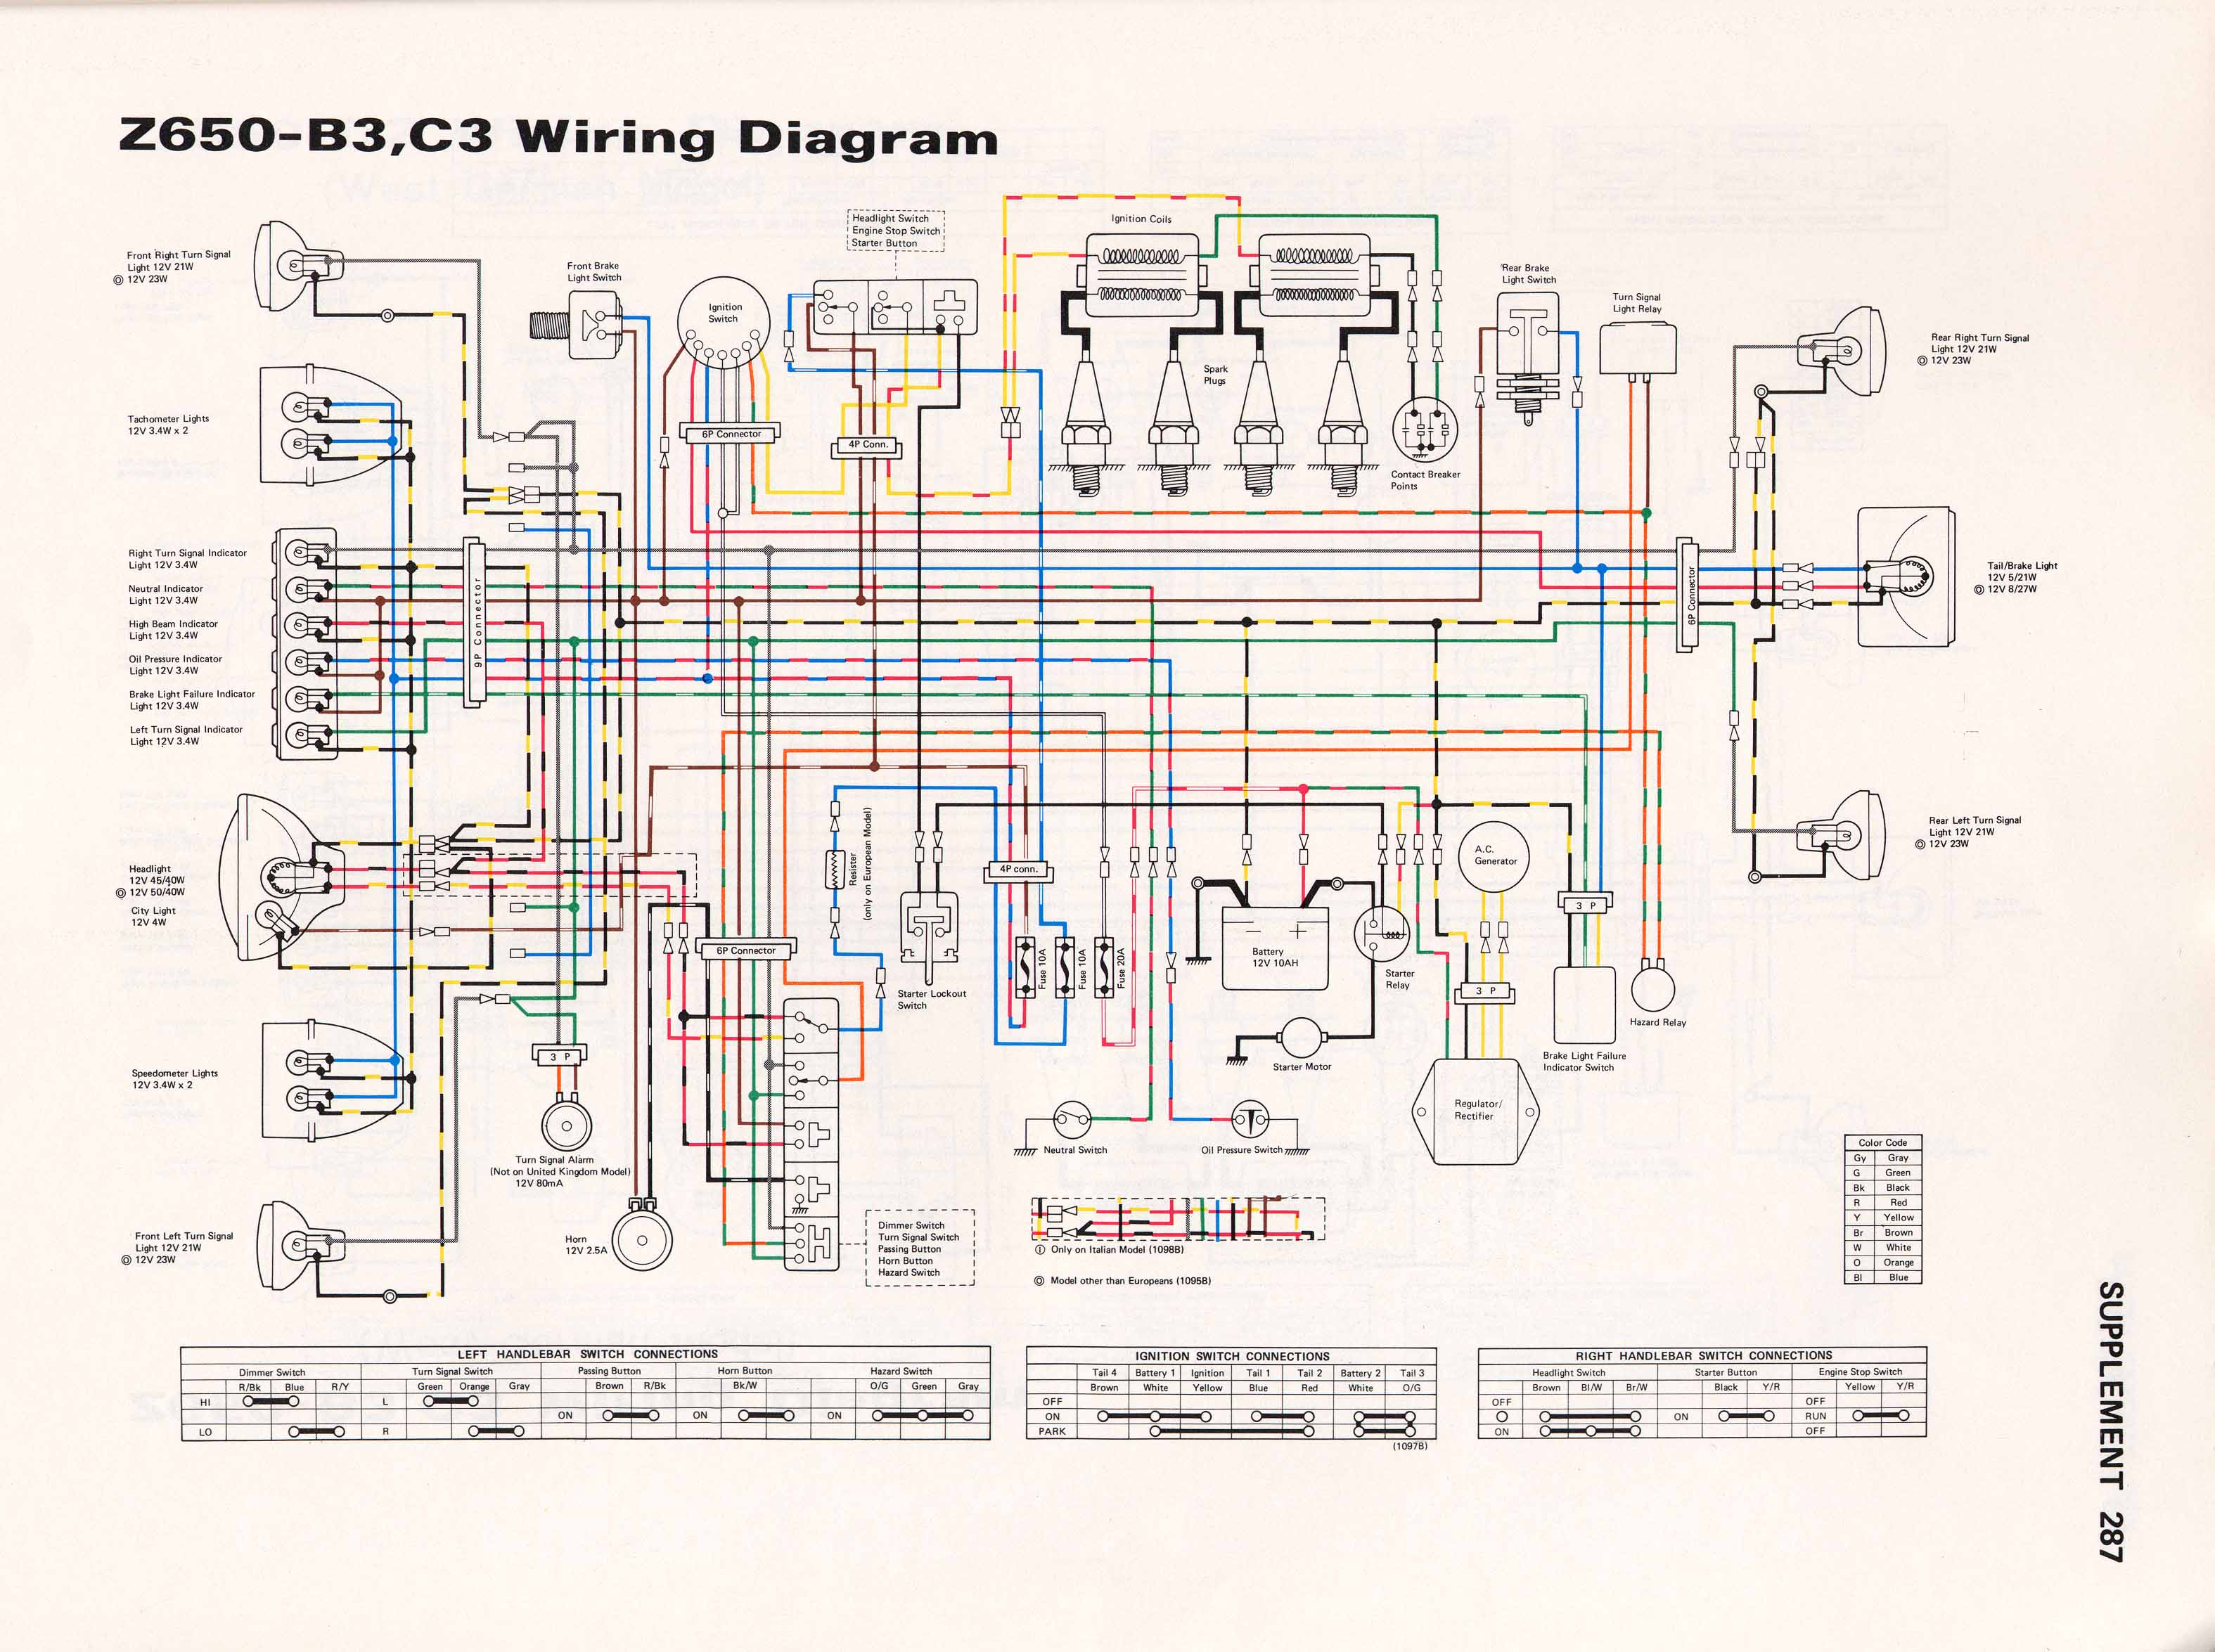 Kz650info Wiring Diagrams Kawasaki Mean Streak Diagram Z650 B3